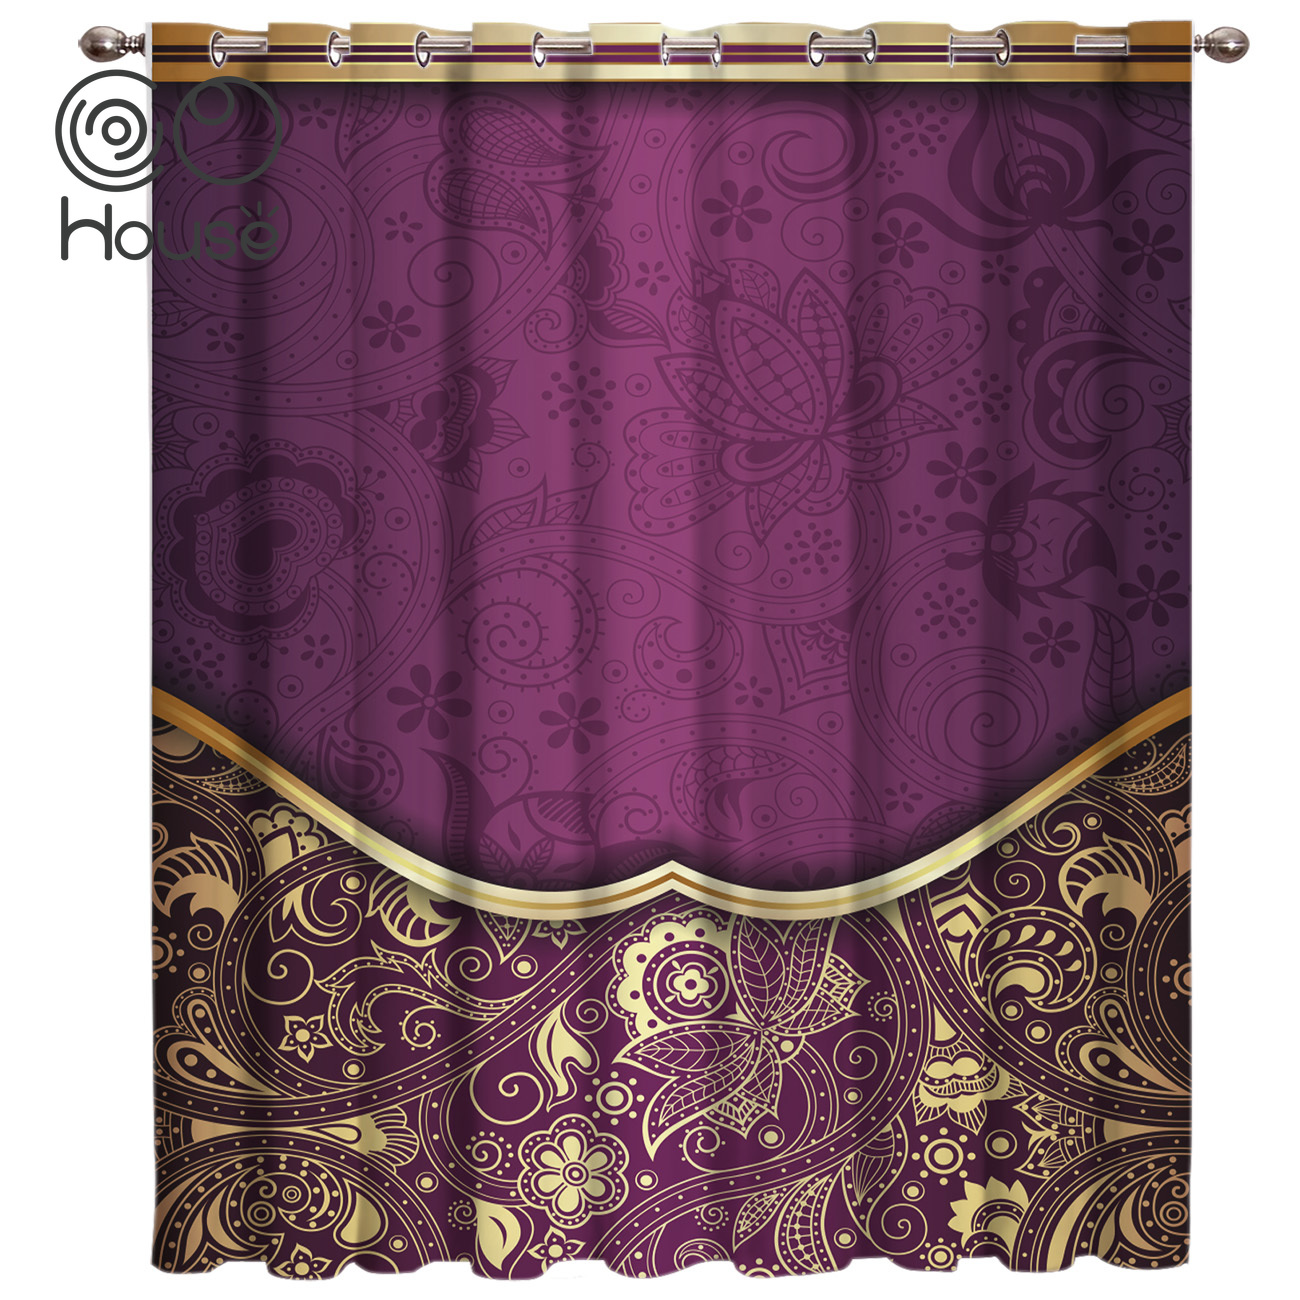 COCOHouse Abstract Golden Purple Flower Background Window Treatments Curtains Valance Room Curtains Large Window Window Curtains